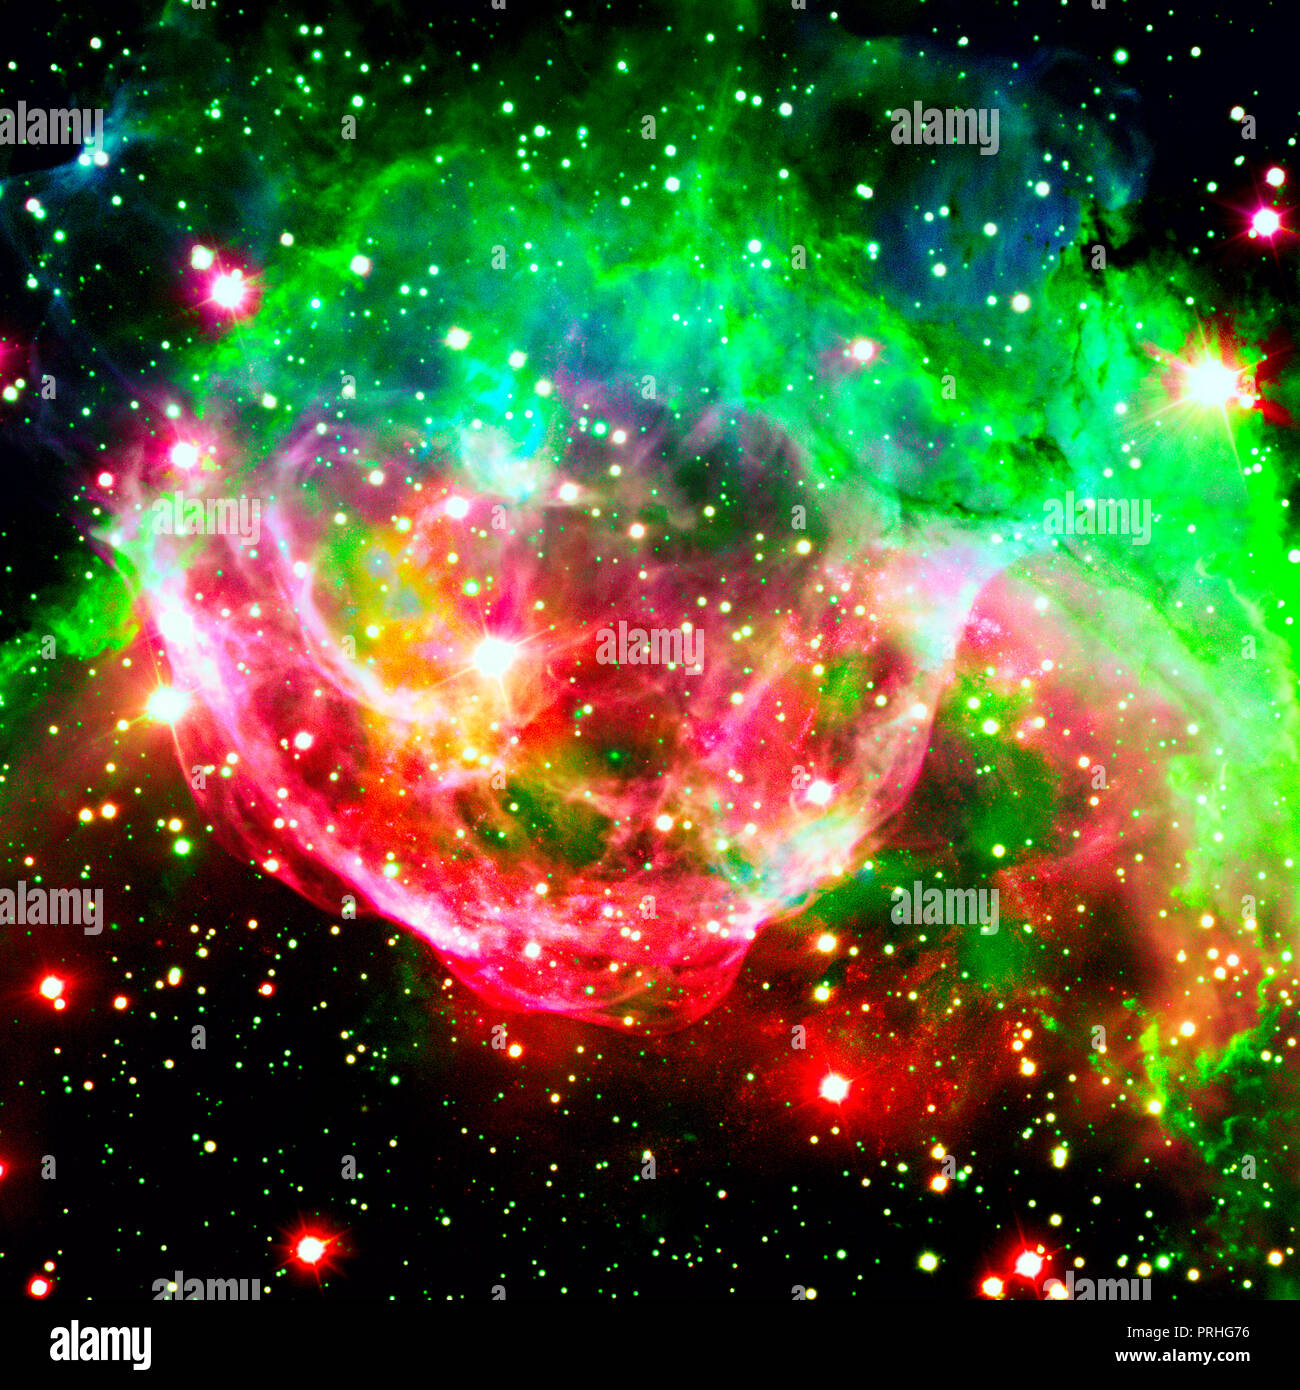 Colorful spiral galaxy in outer space. Elements of this Image furnished by NASA. - Stock Image